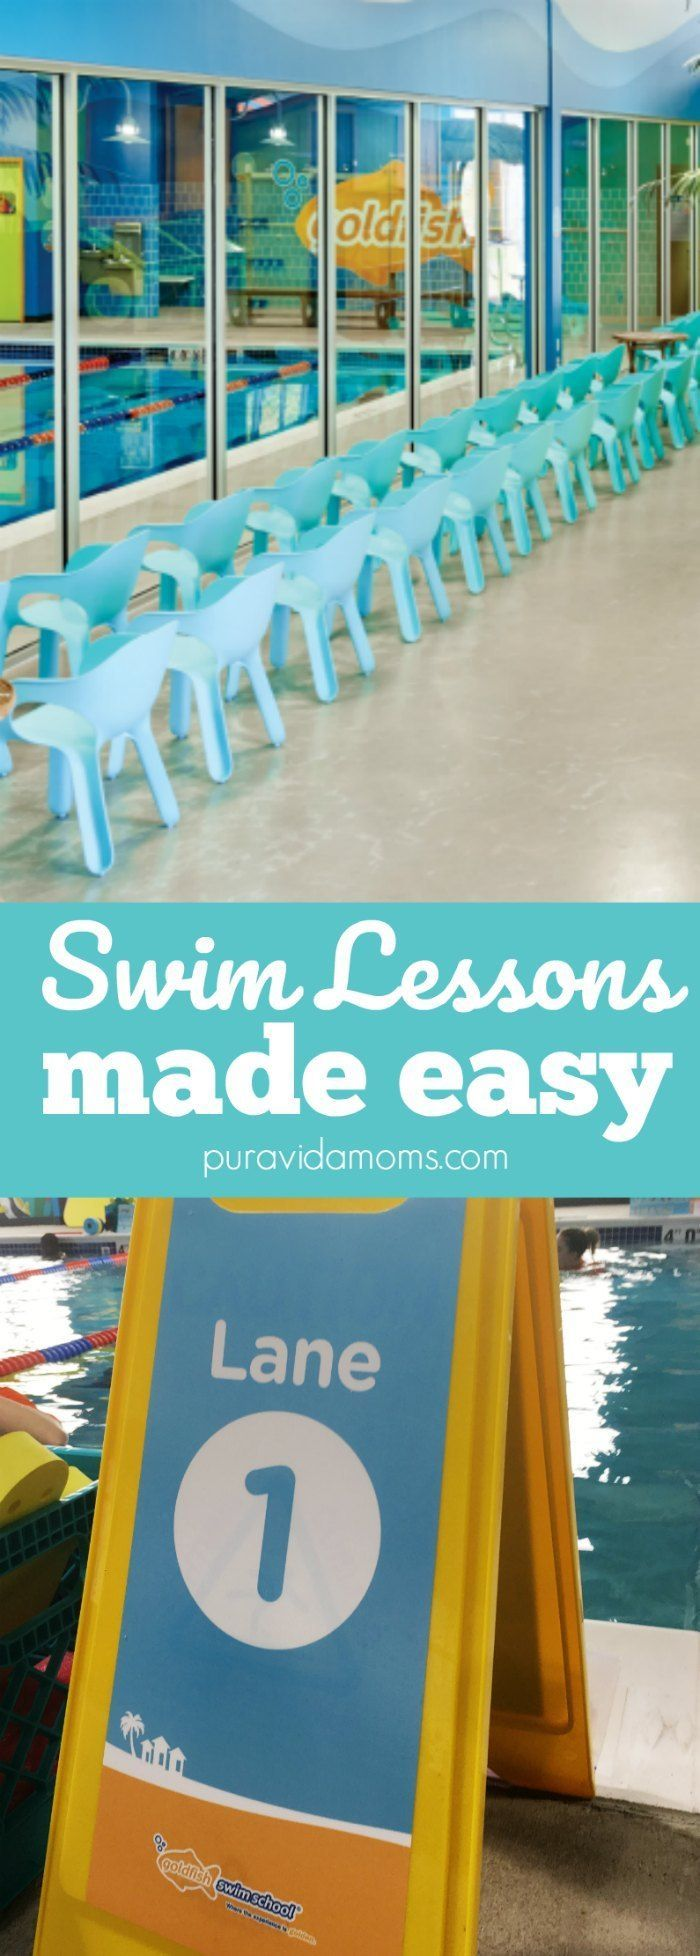 Getting young children ready for swim lessons can feel like a marathon. 5 tips to simplify the process so everyone can have fun during swim lessons!